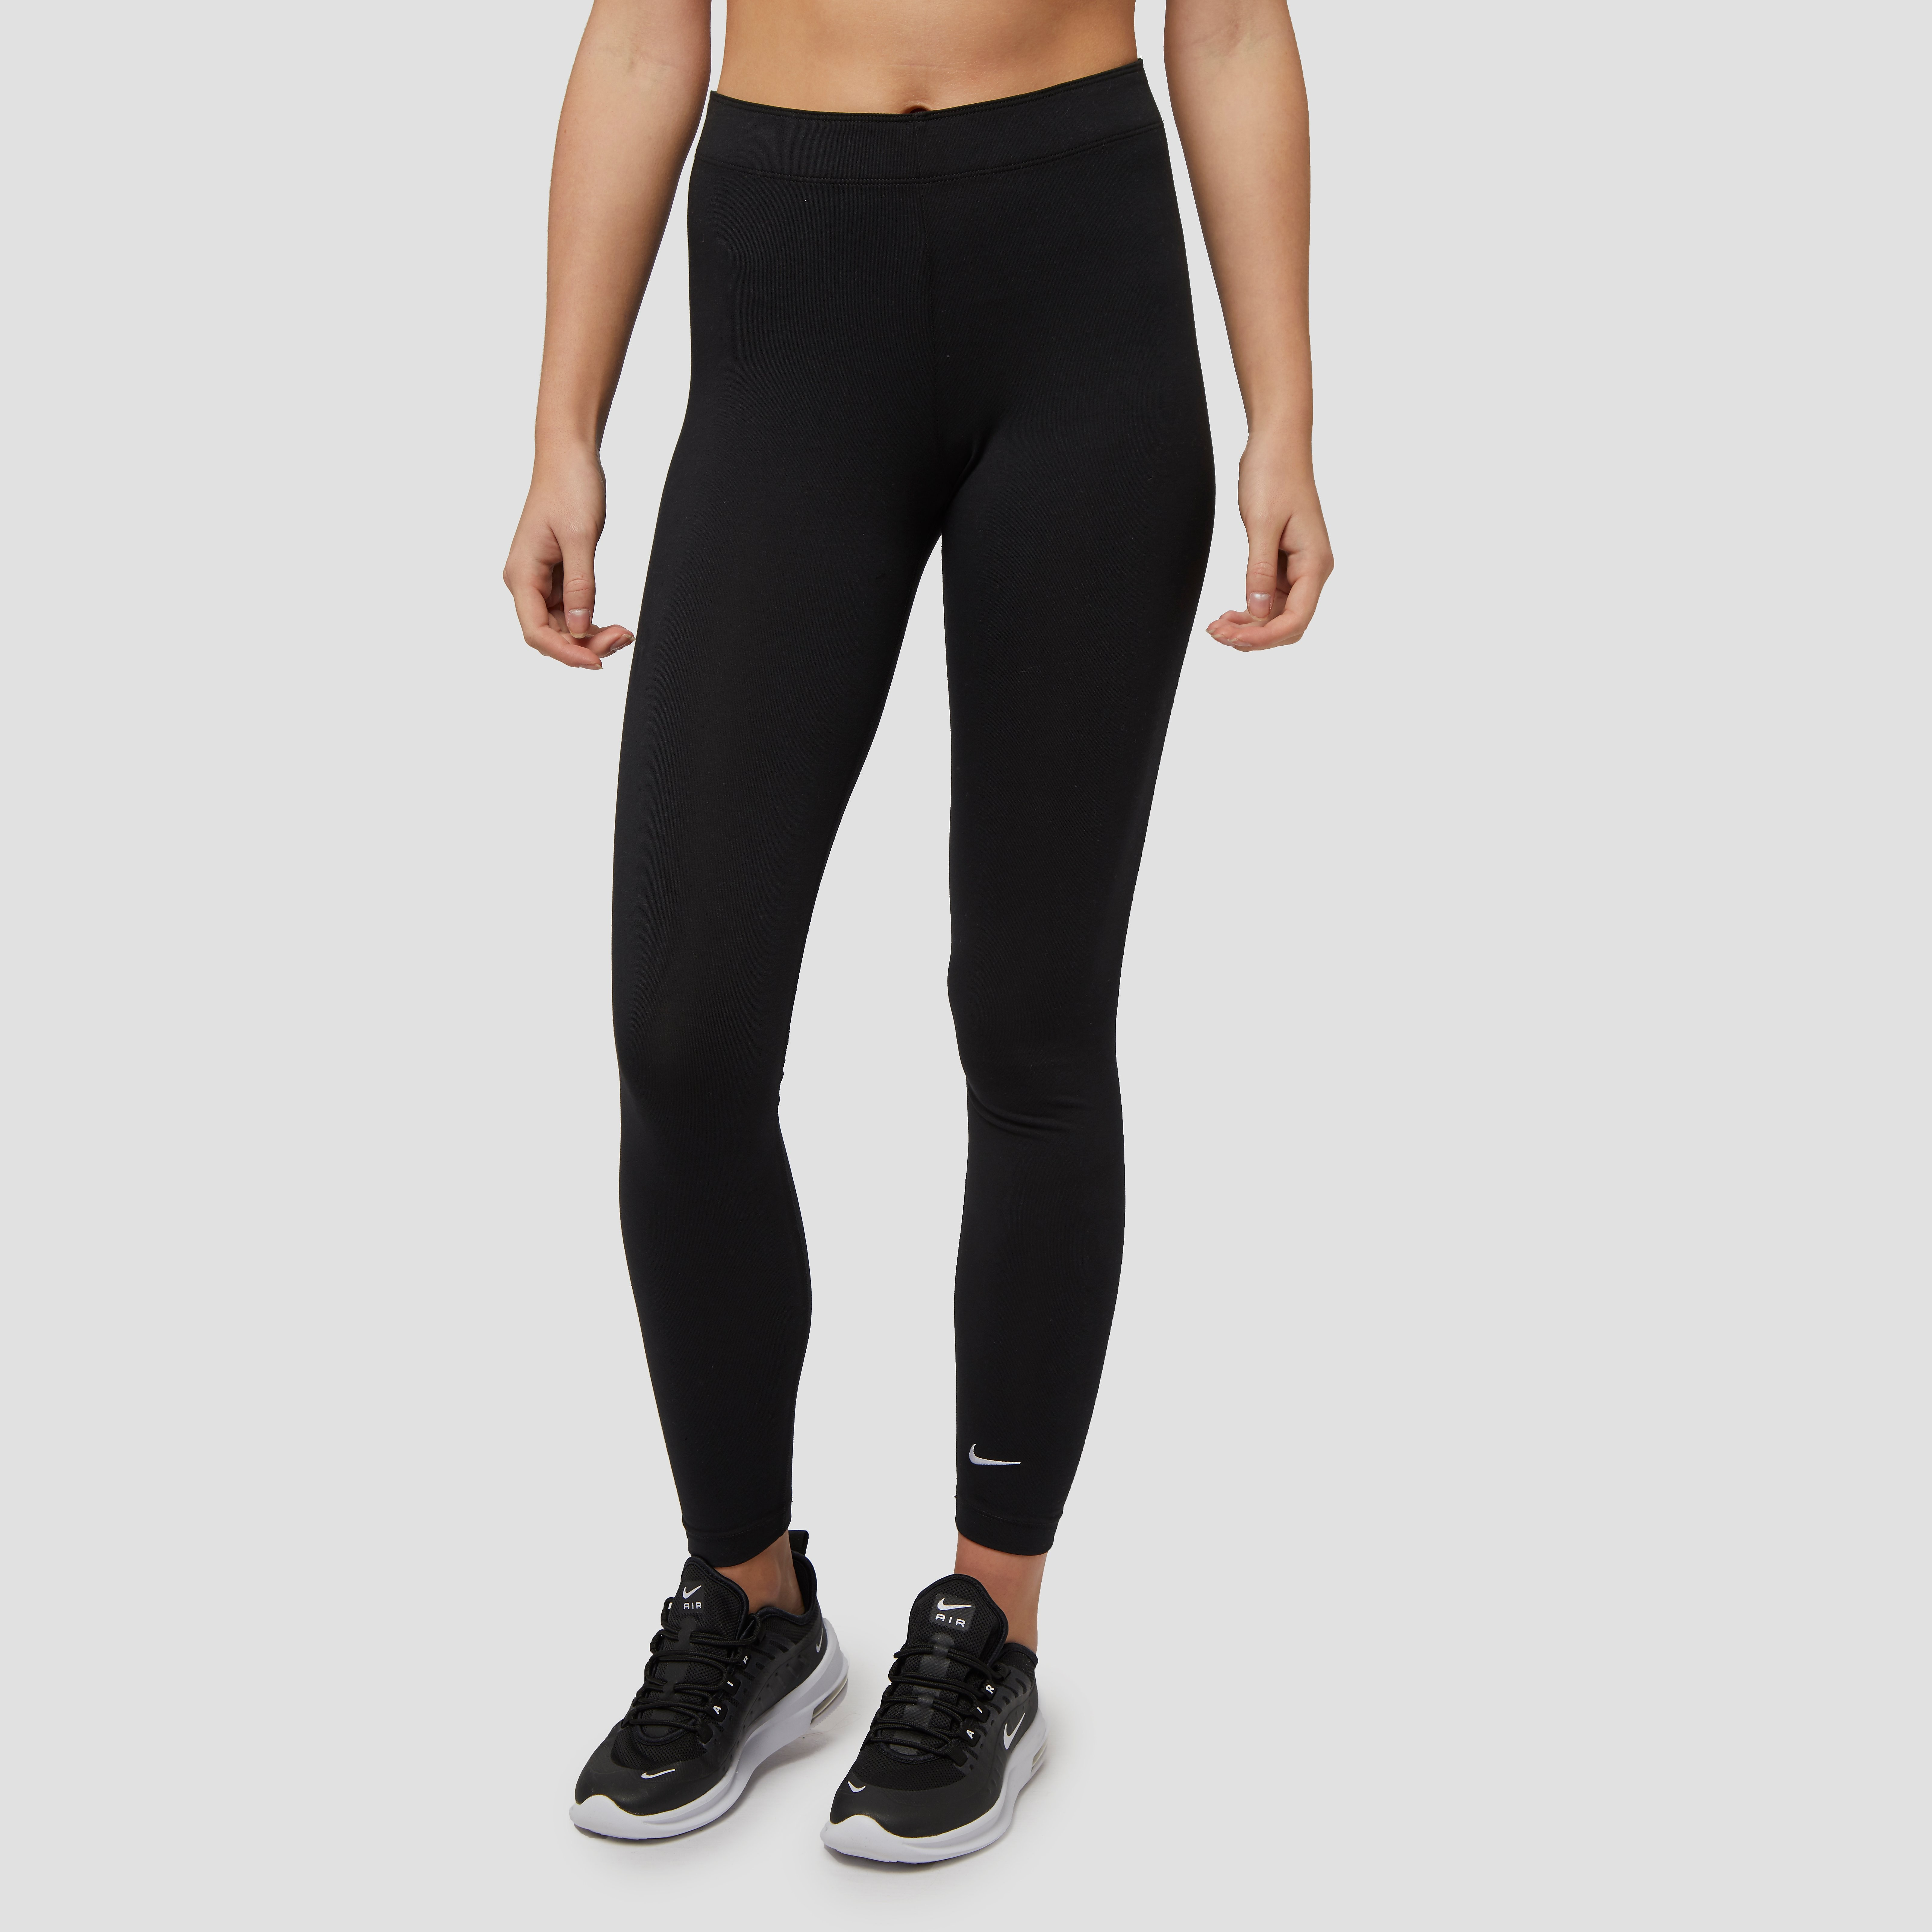 NIKE Sportswear club tight zwart dames Dames